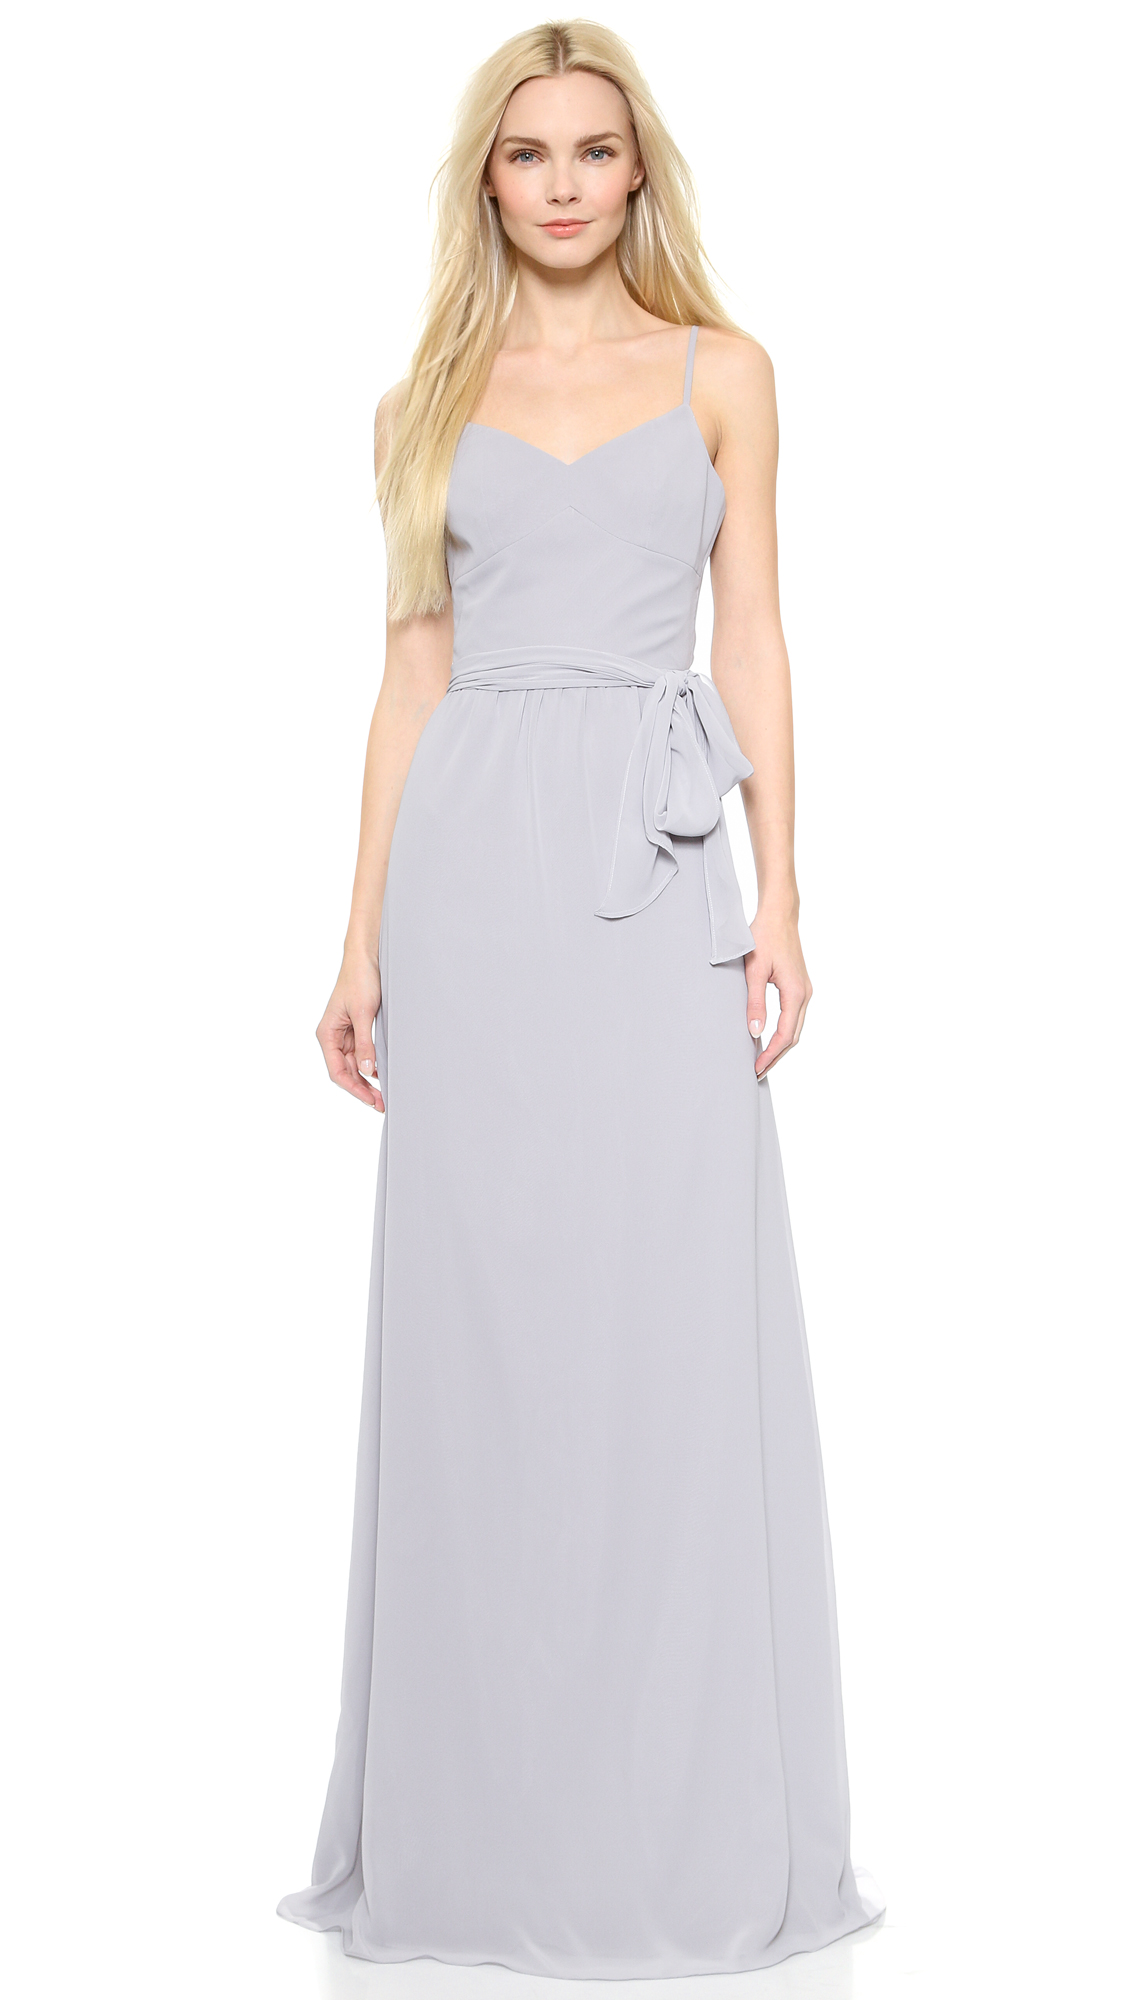 Joanna August Stephanie Long Dress - Silver